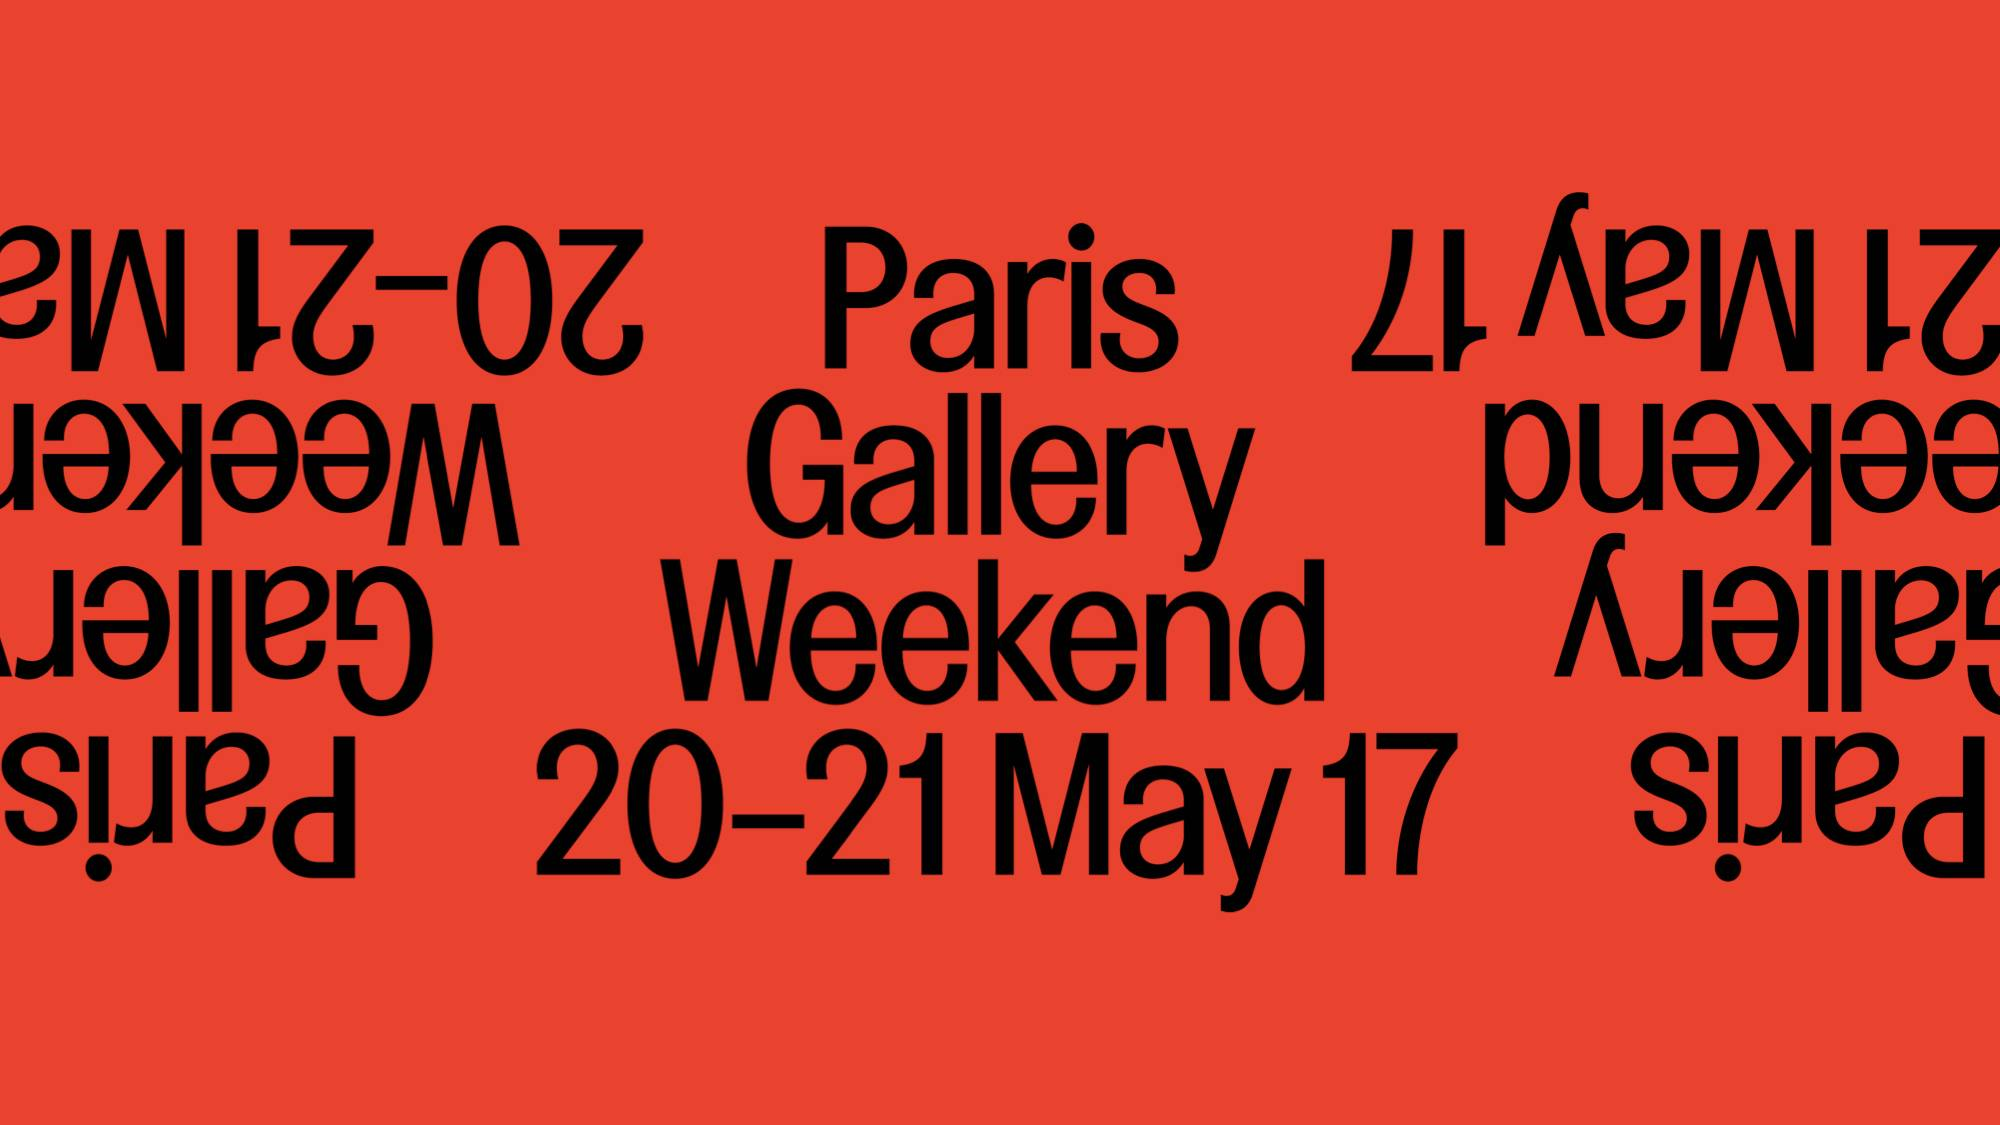 CHOICES - Paris Gallery Weekend (FR)